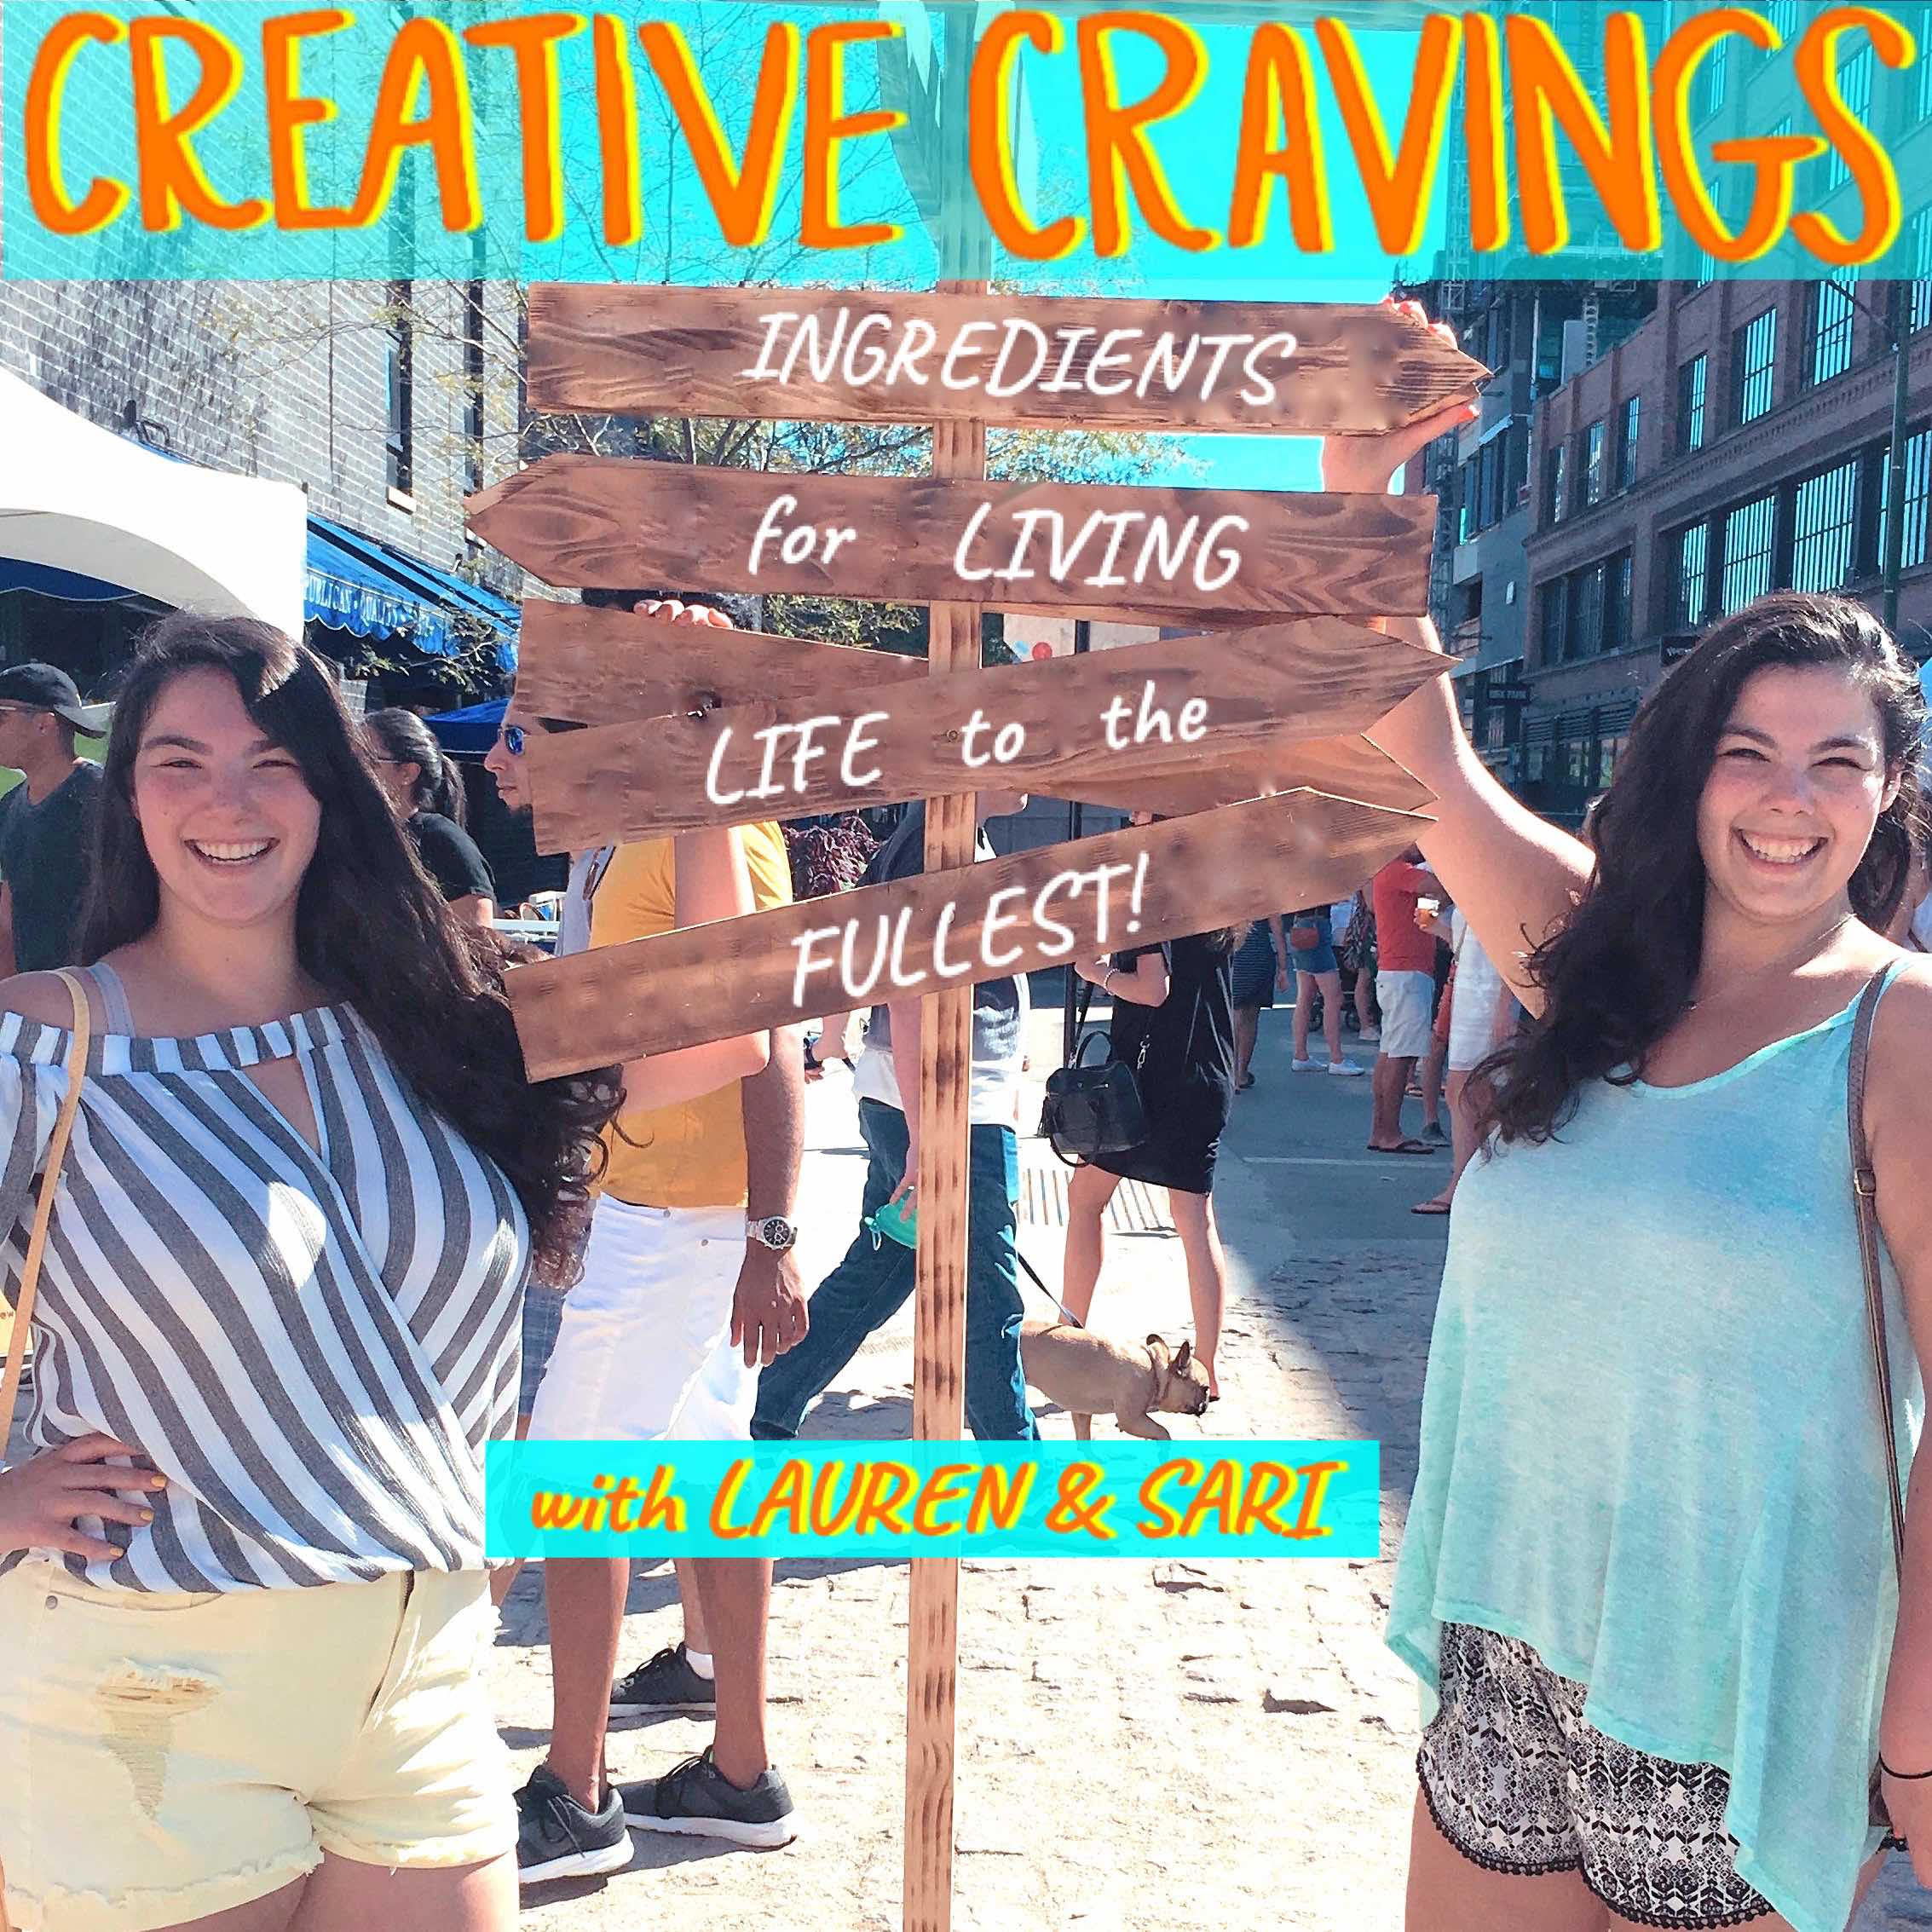 Trailer: Introducing Creative Cravings   Here's a taste of the show we created just for you. We're launching on our 27th birthdays!   2.7.2019